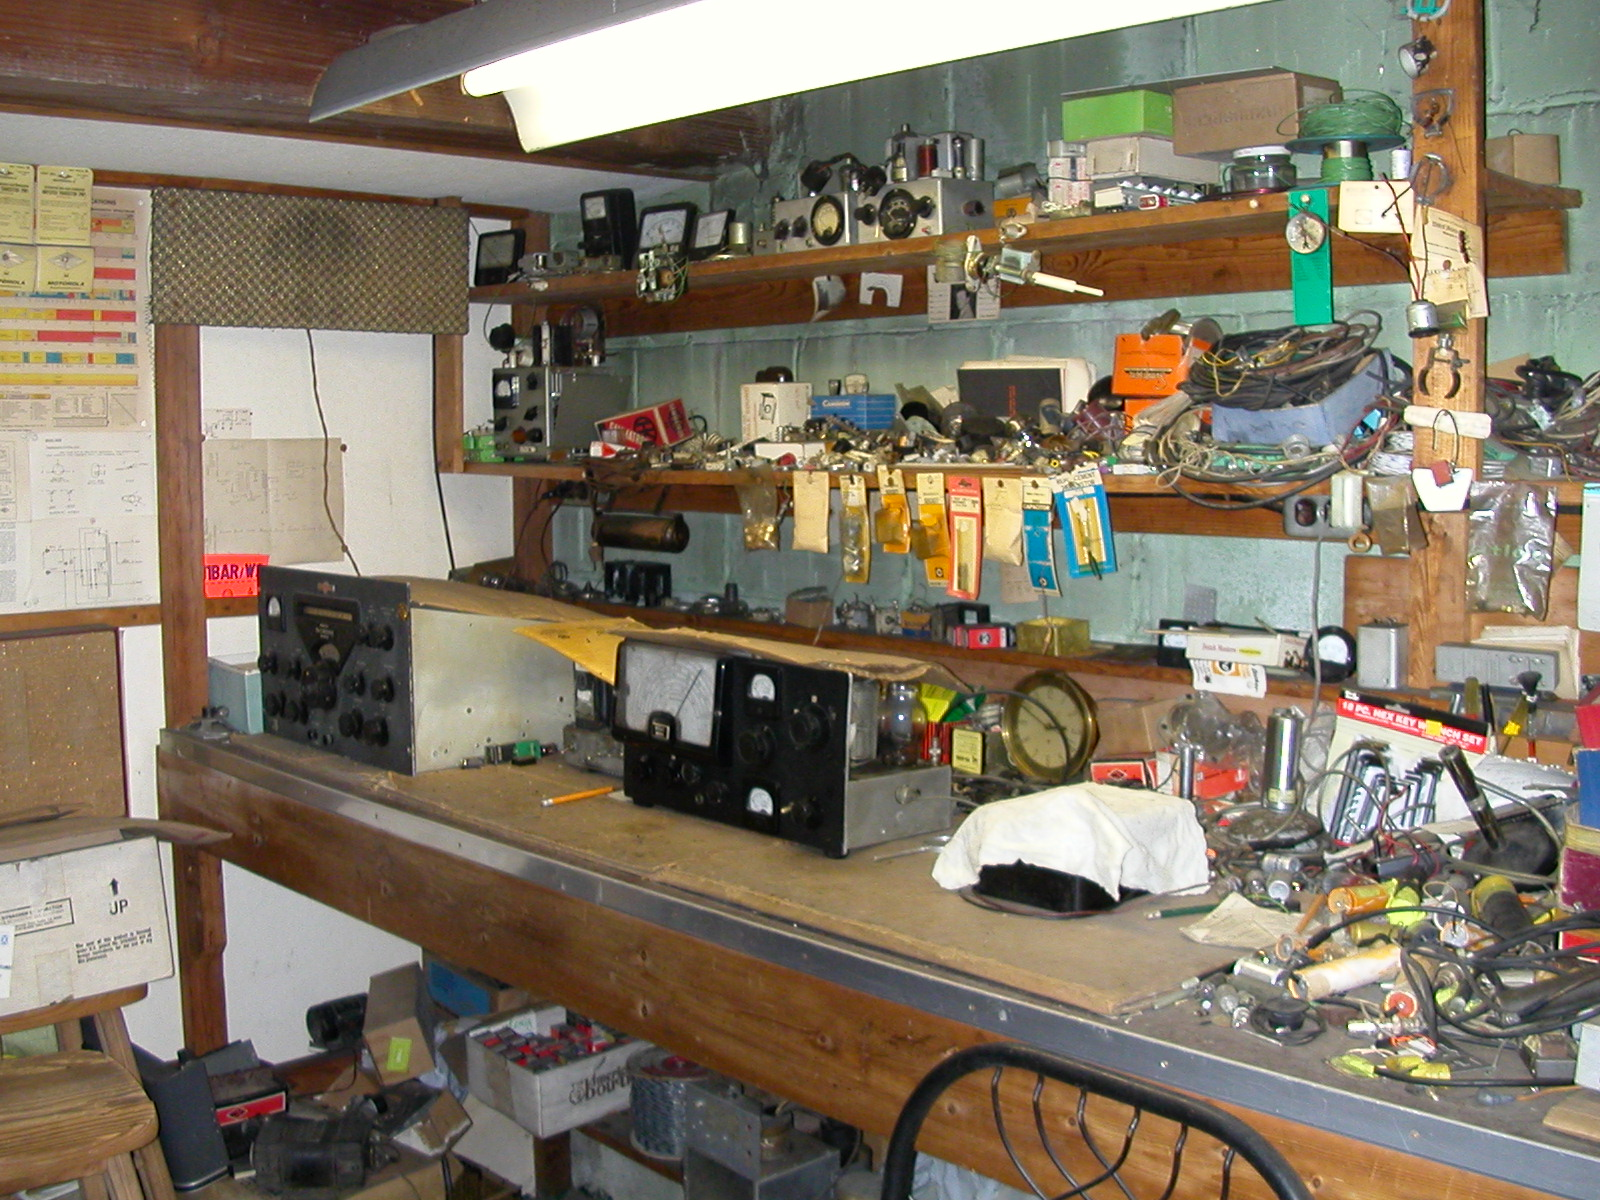 Cairo hackerspace makerspaces pinterest for Small basement workshop ideas